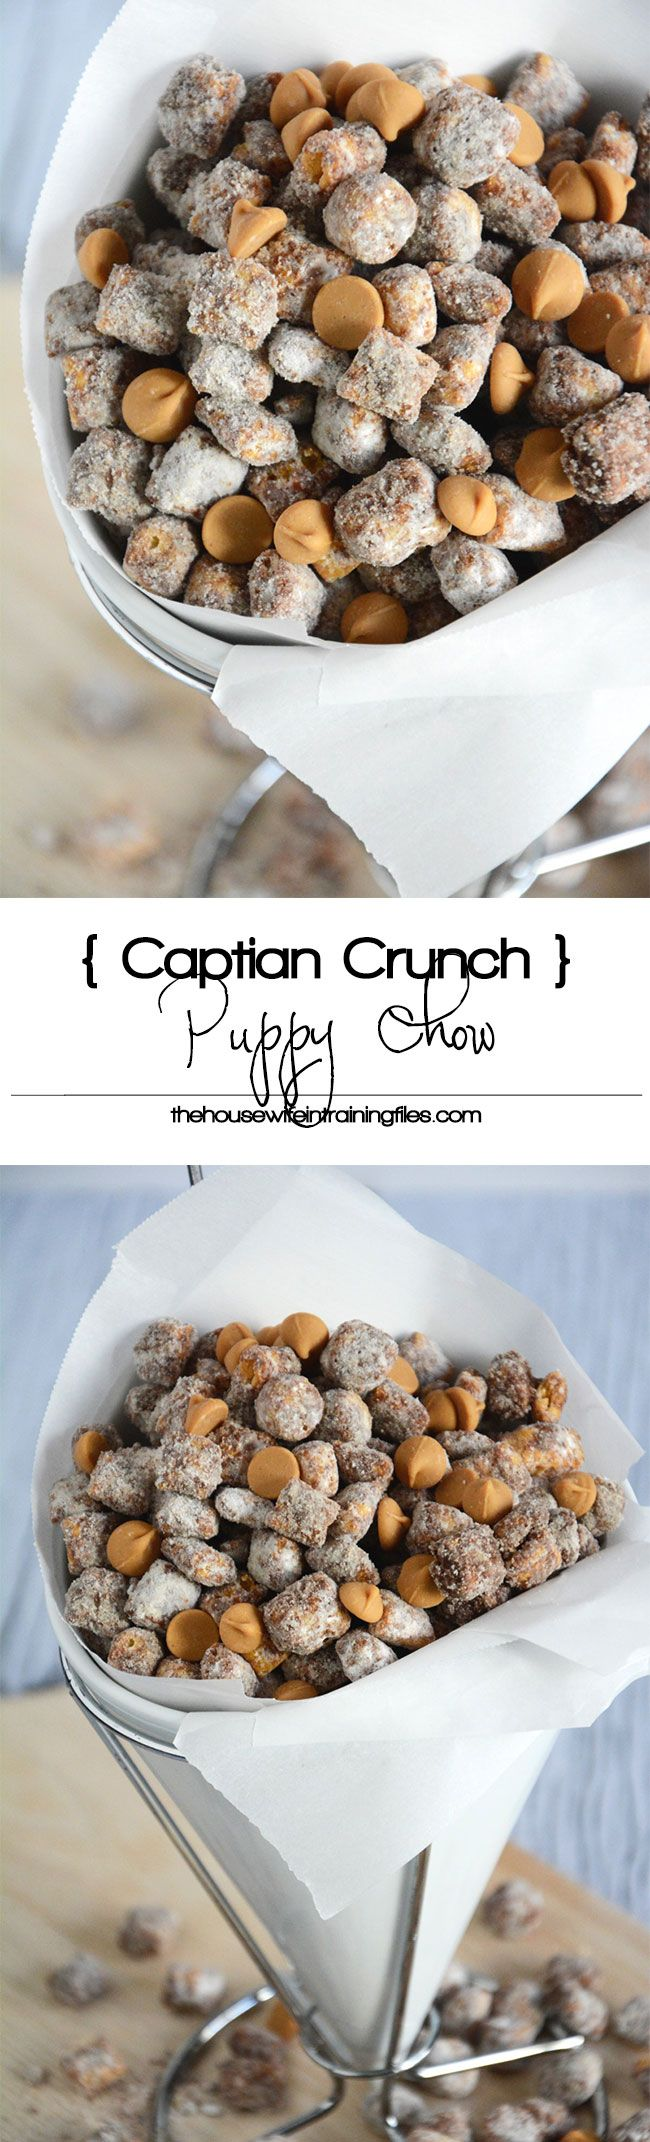 Puppy Chow gets a peanut butter makeover with a childhood classic cereal!